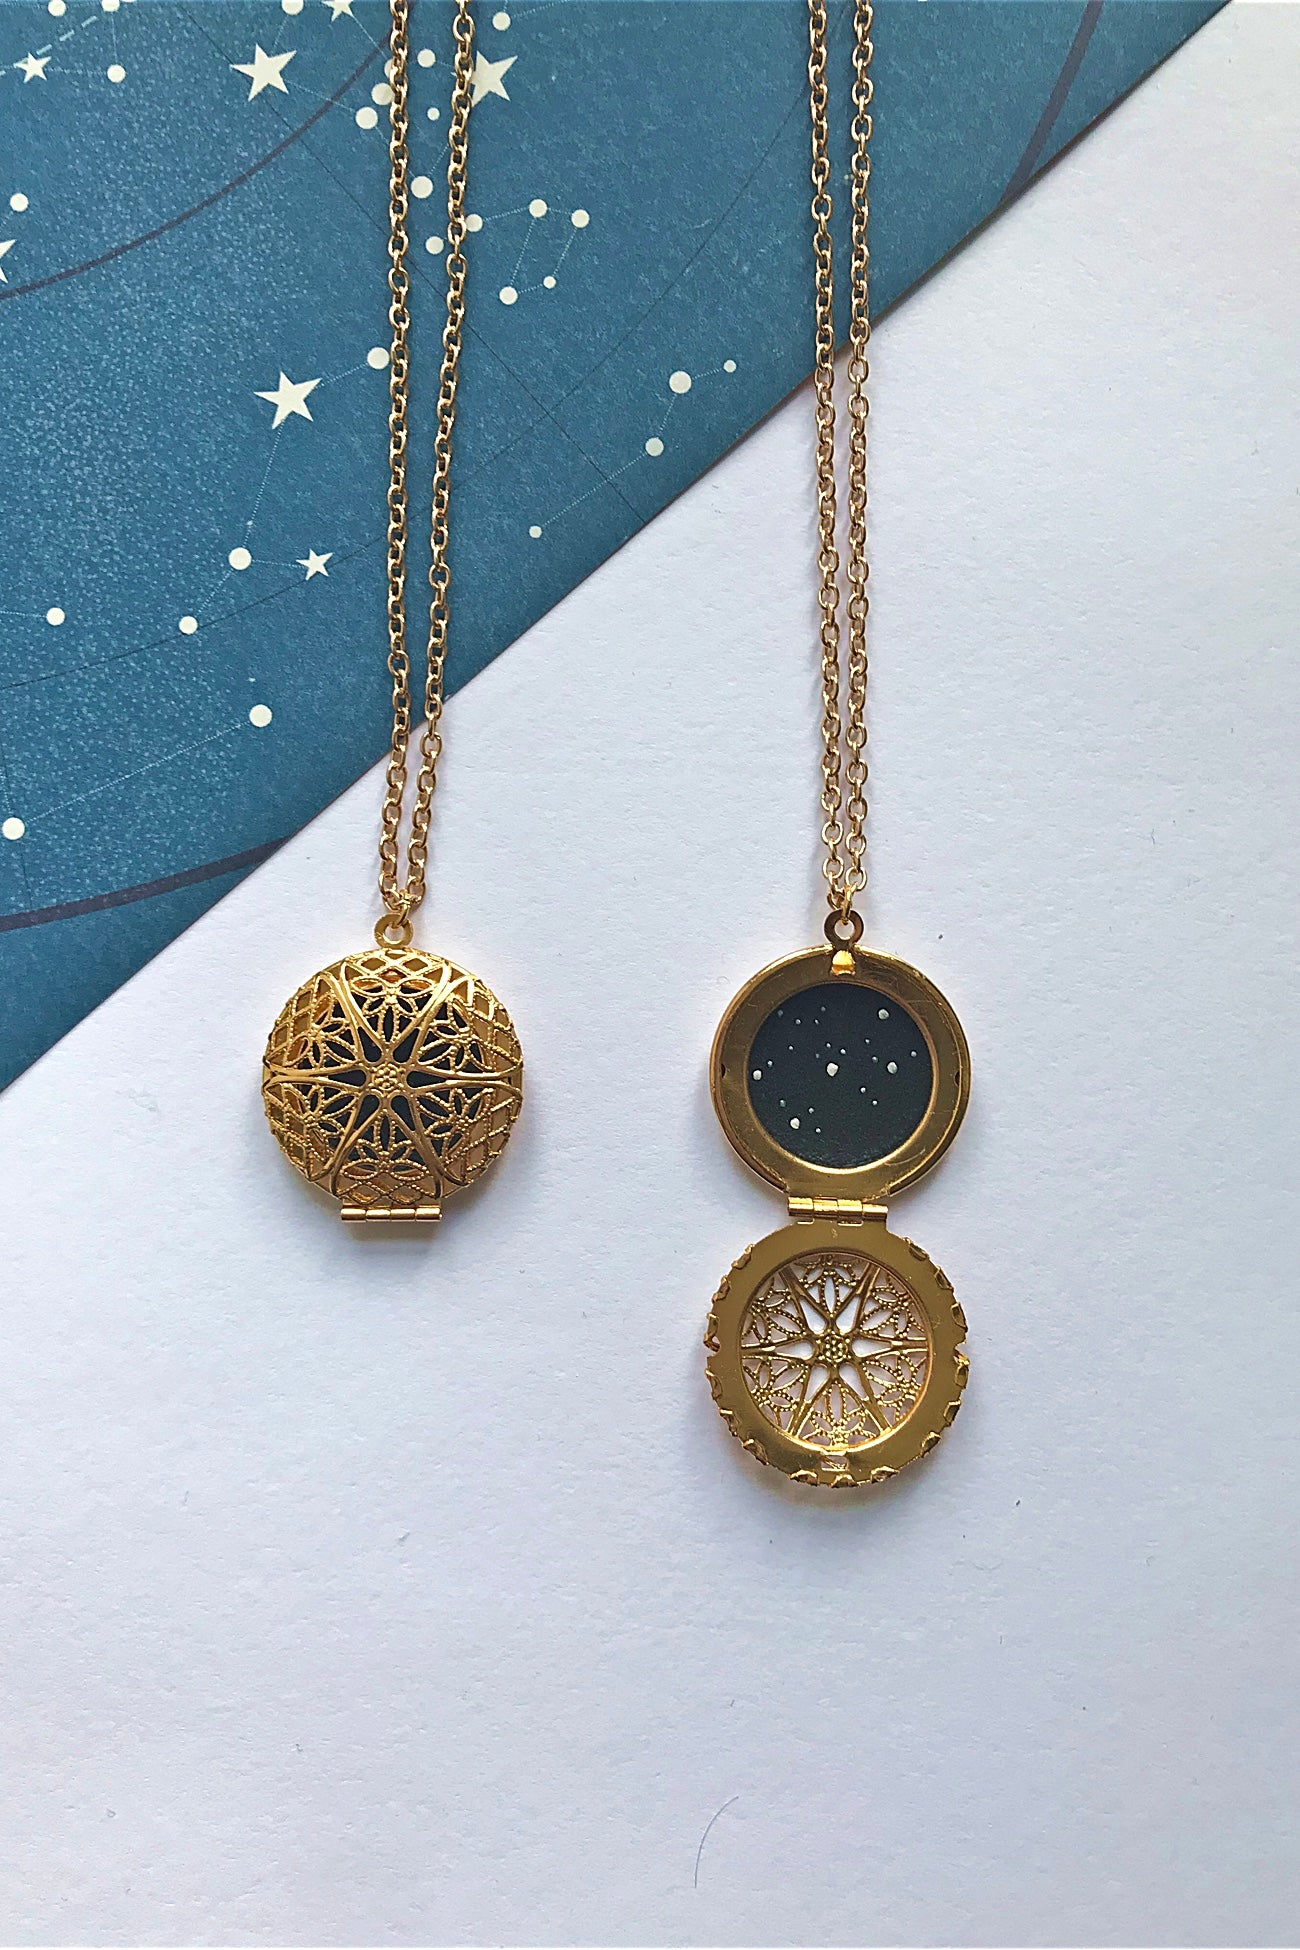 Sagittarius constellation locket